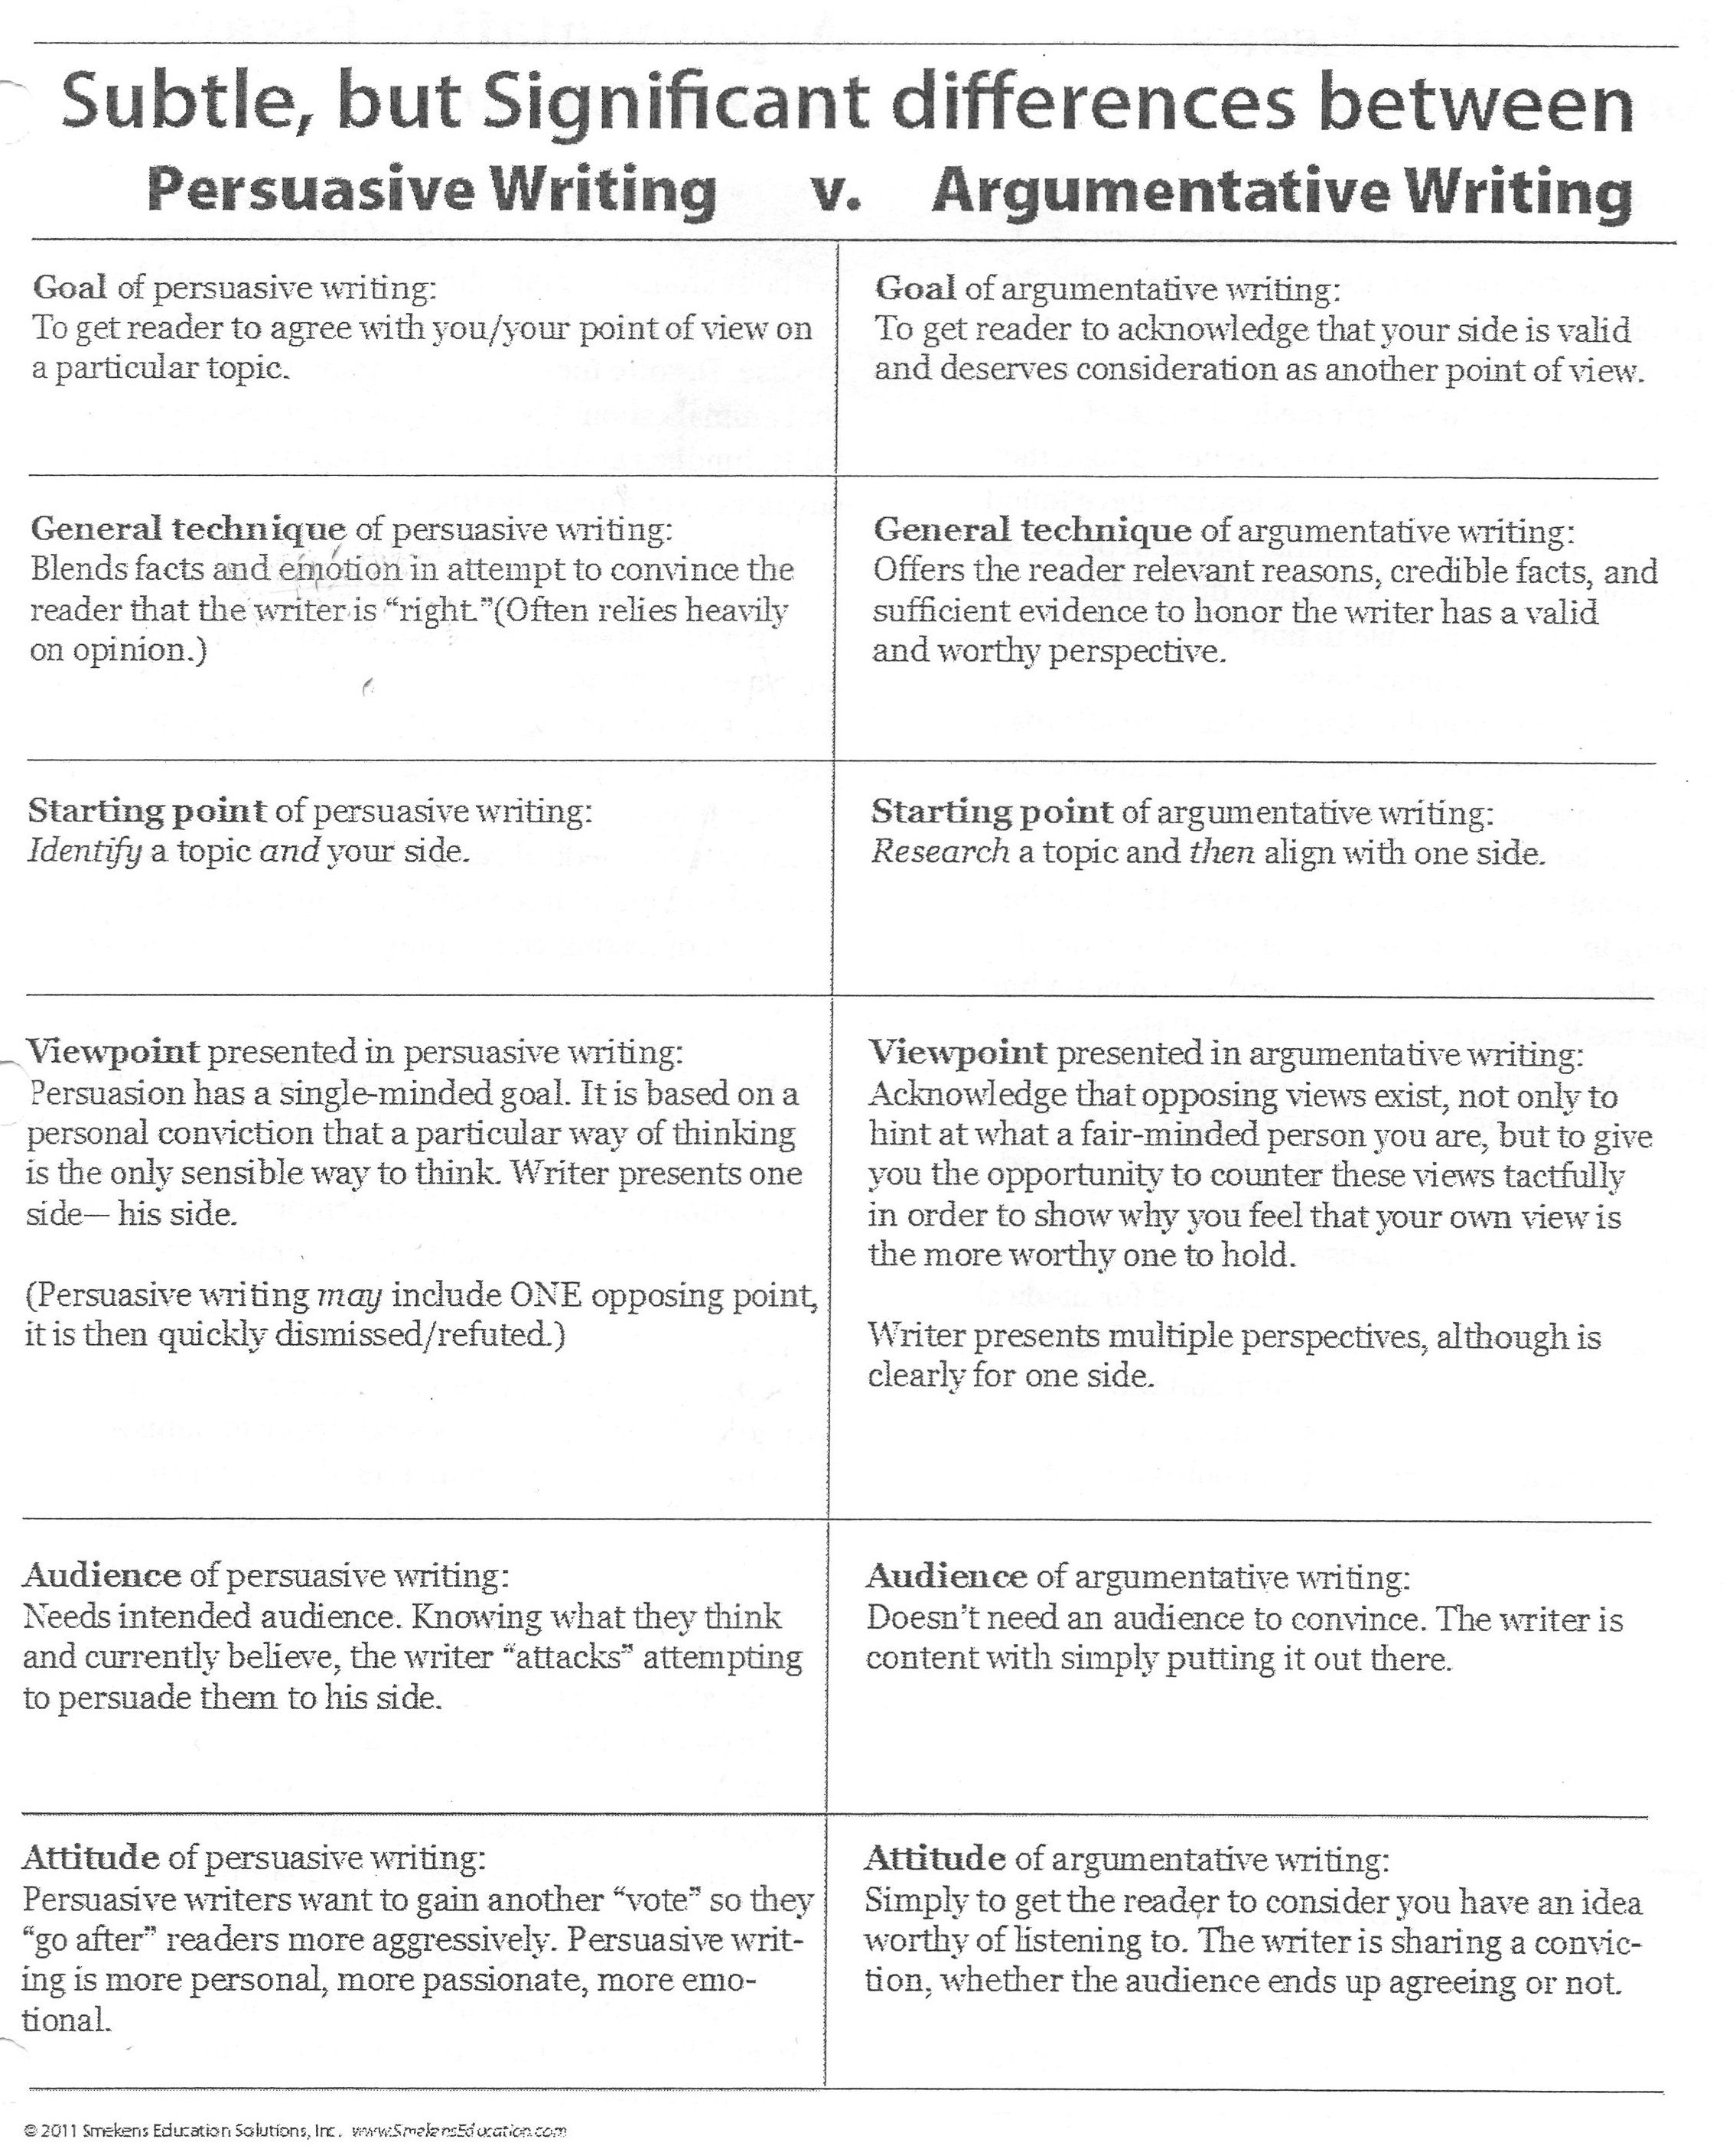 006 Essay Example Persuasive Vs Argumentative Awful Are And Essays The Same Differentiate Full